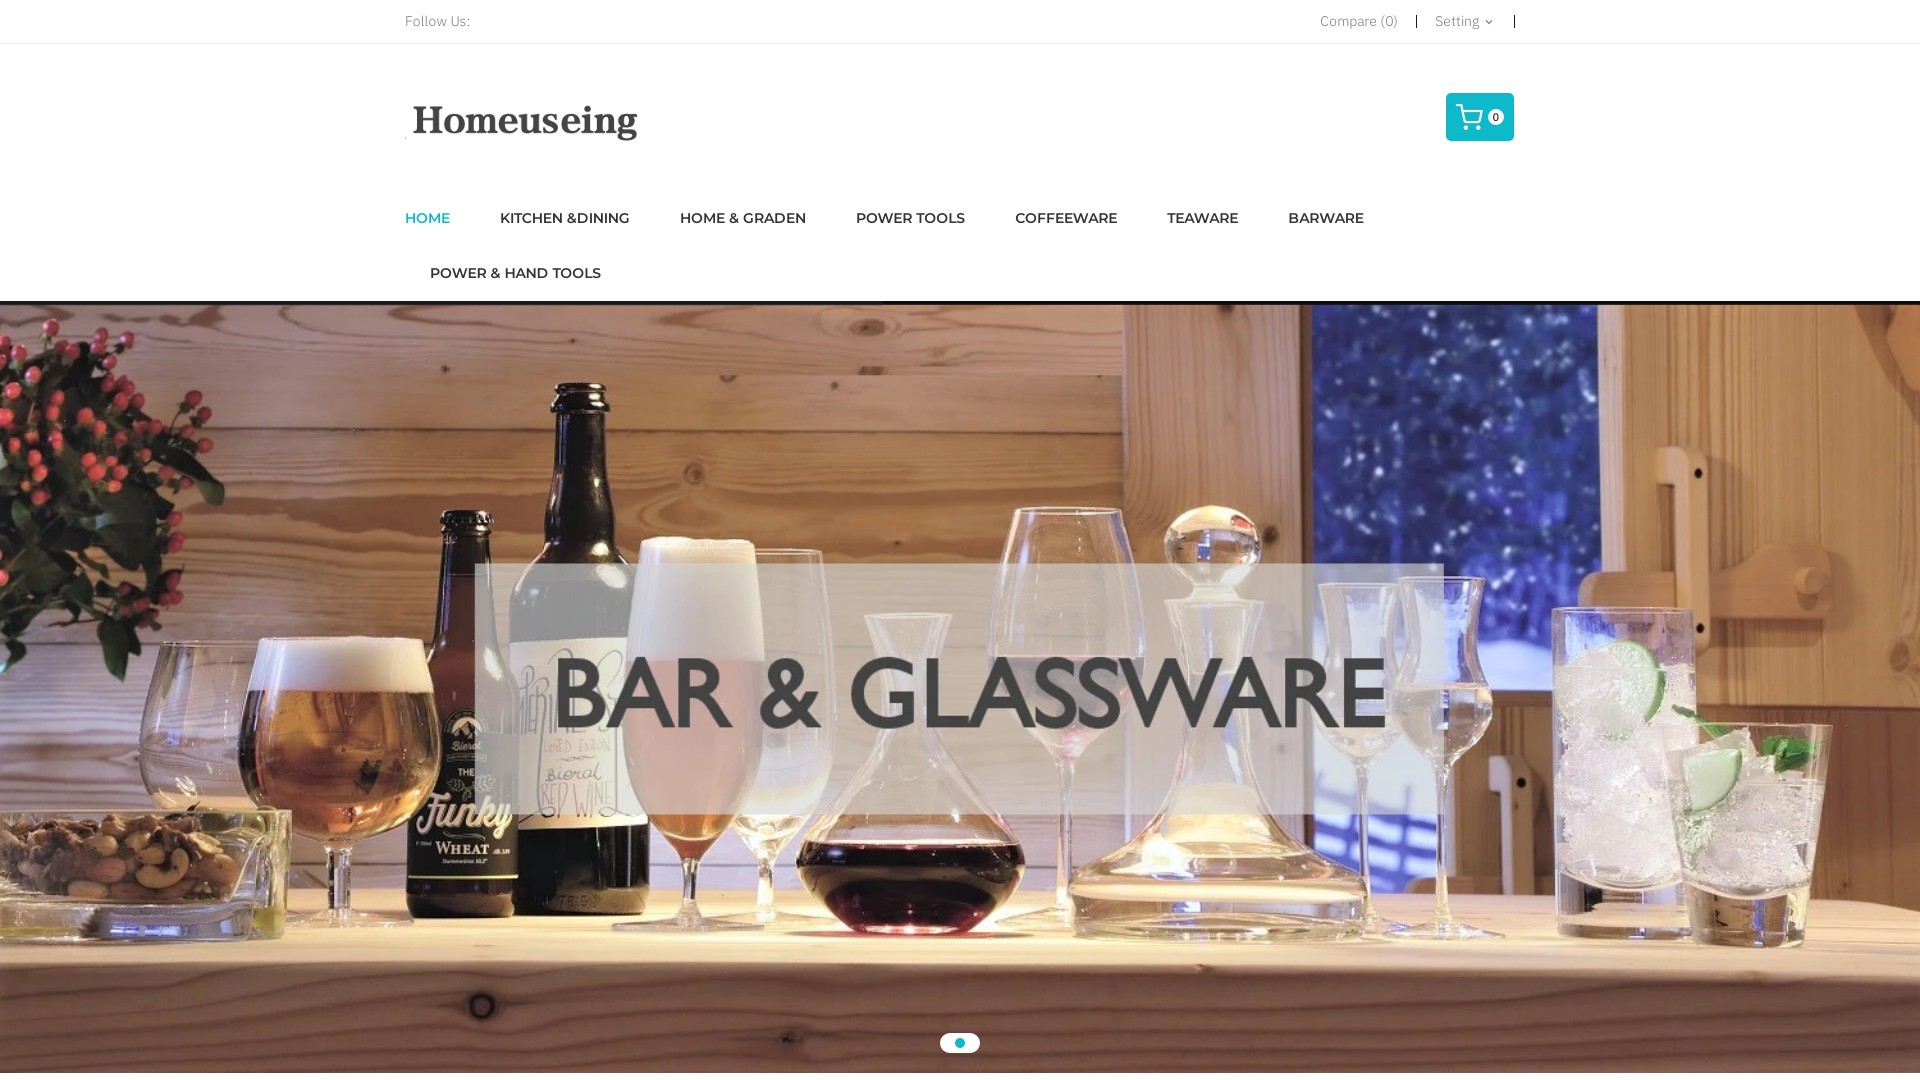 Is Homeuseing a Scam? See the Review of the Online Store